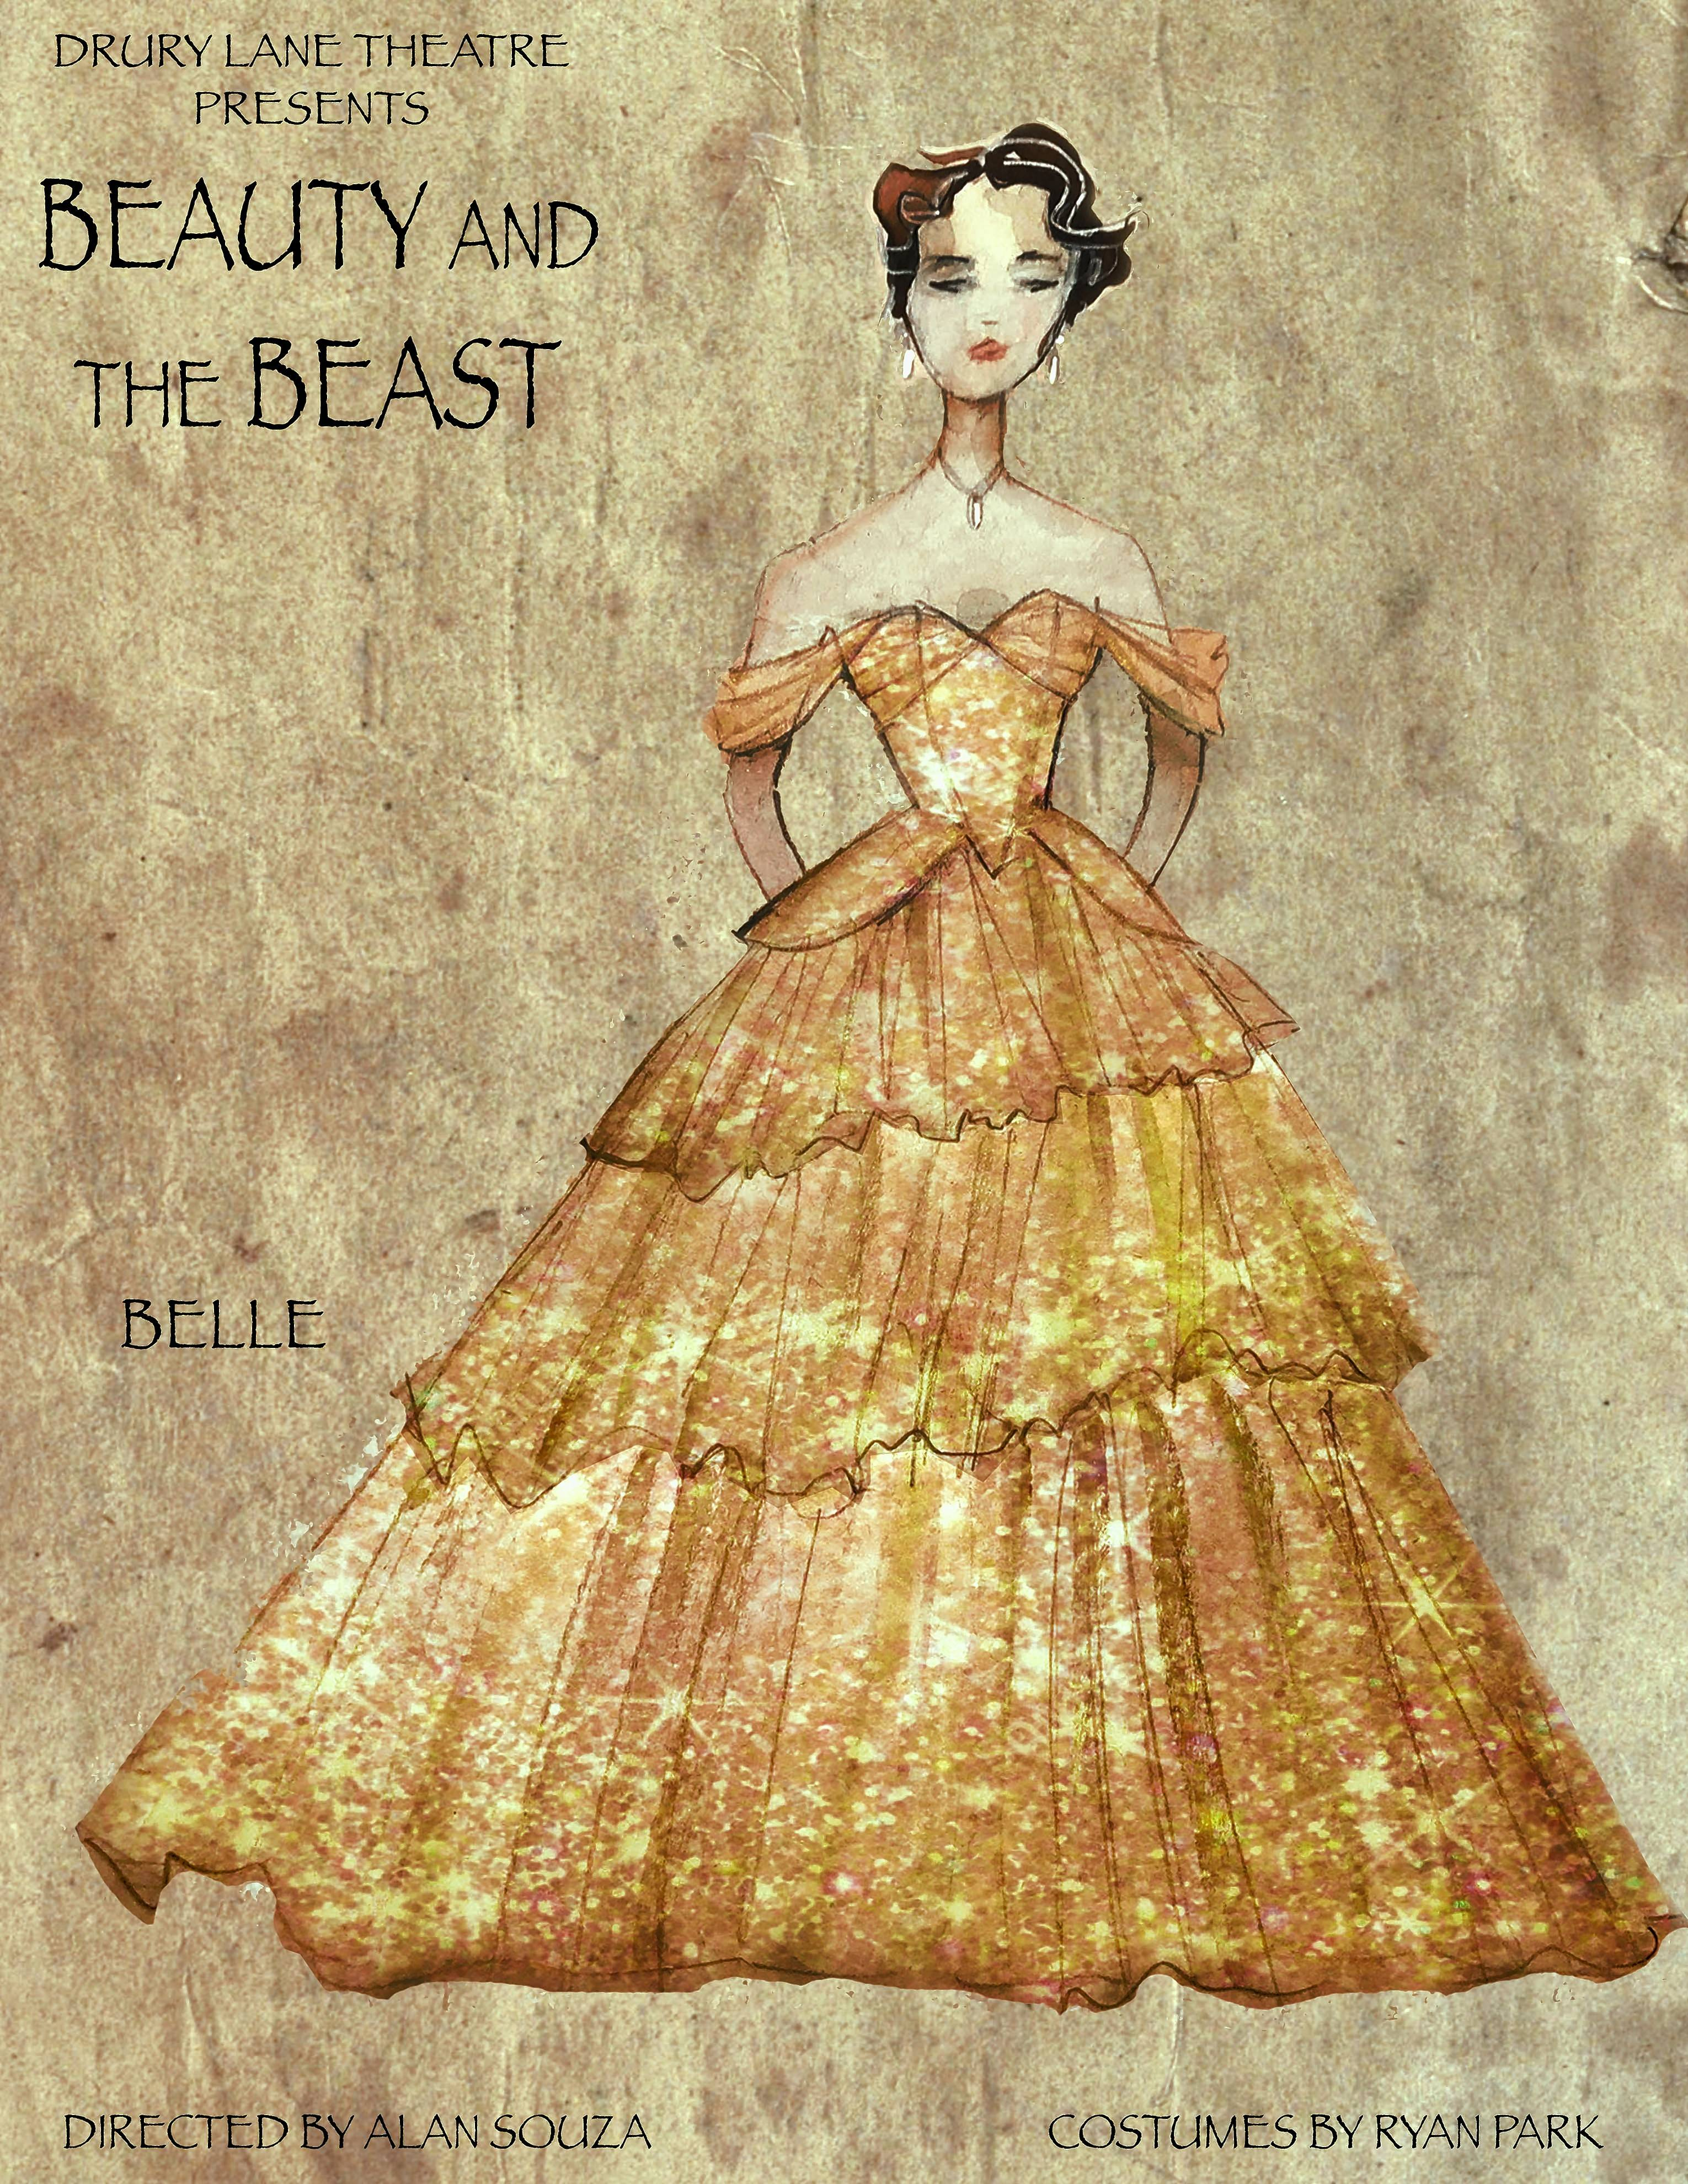 """Costume designer Ryan Park put his own spin on Belle's yellow ballgown for Drury Lane Theatre's production of """"Disney's Beauty and the Beast."""""""